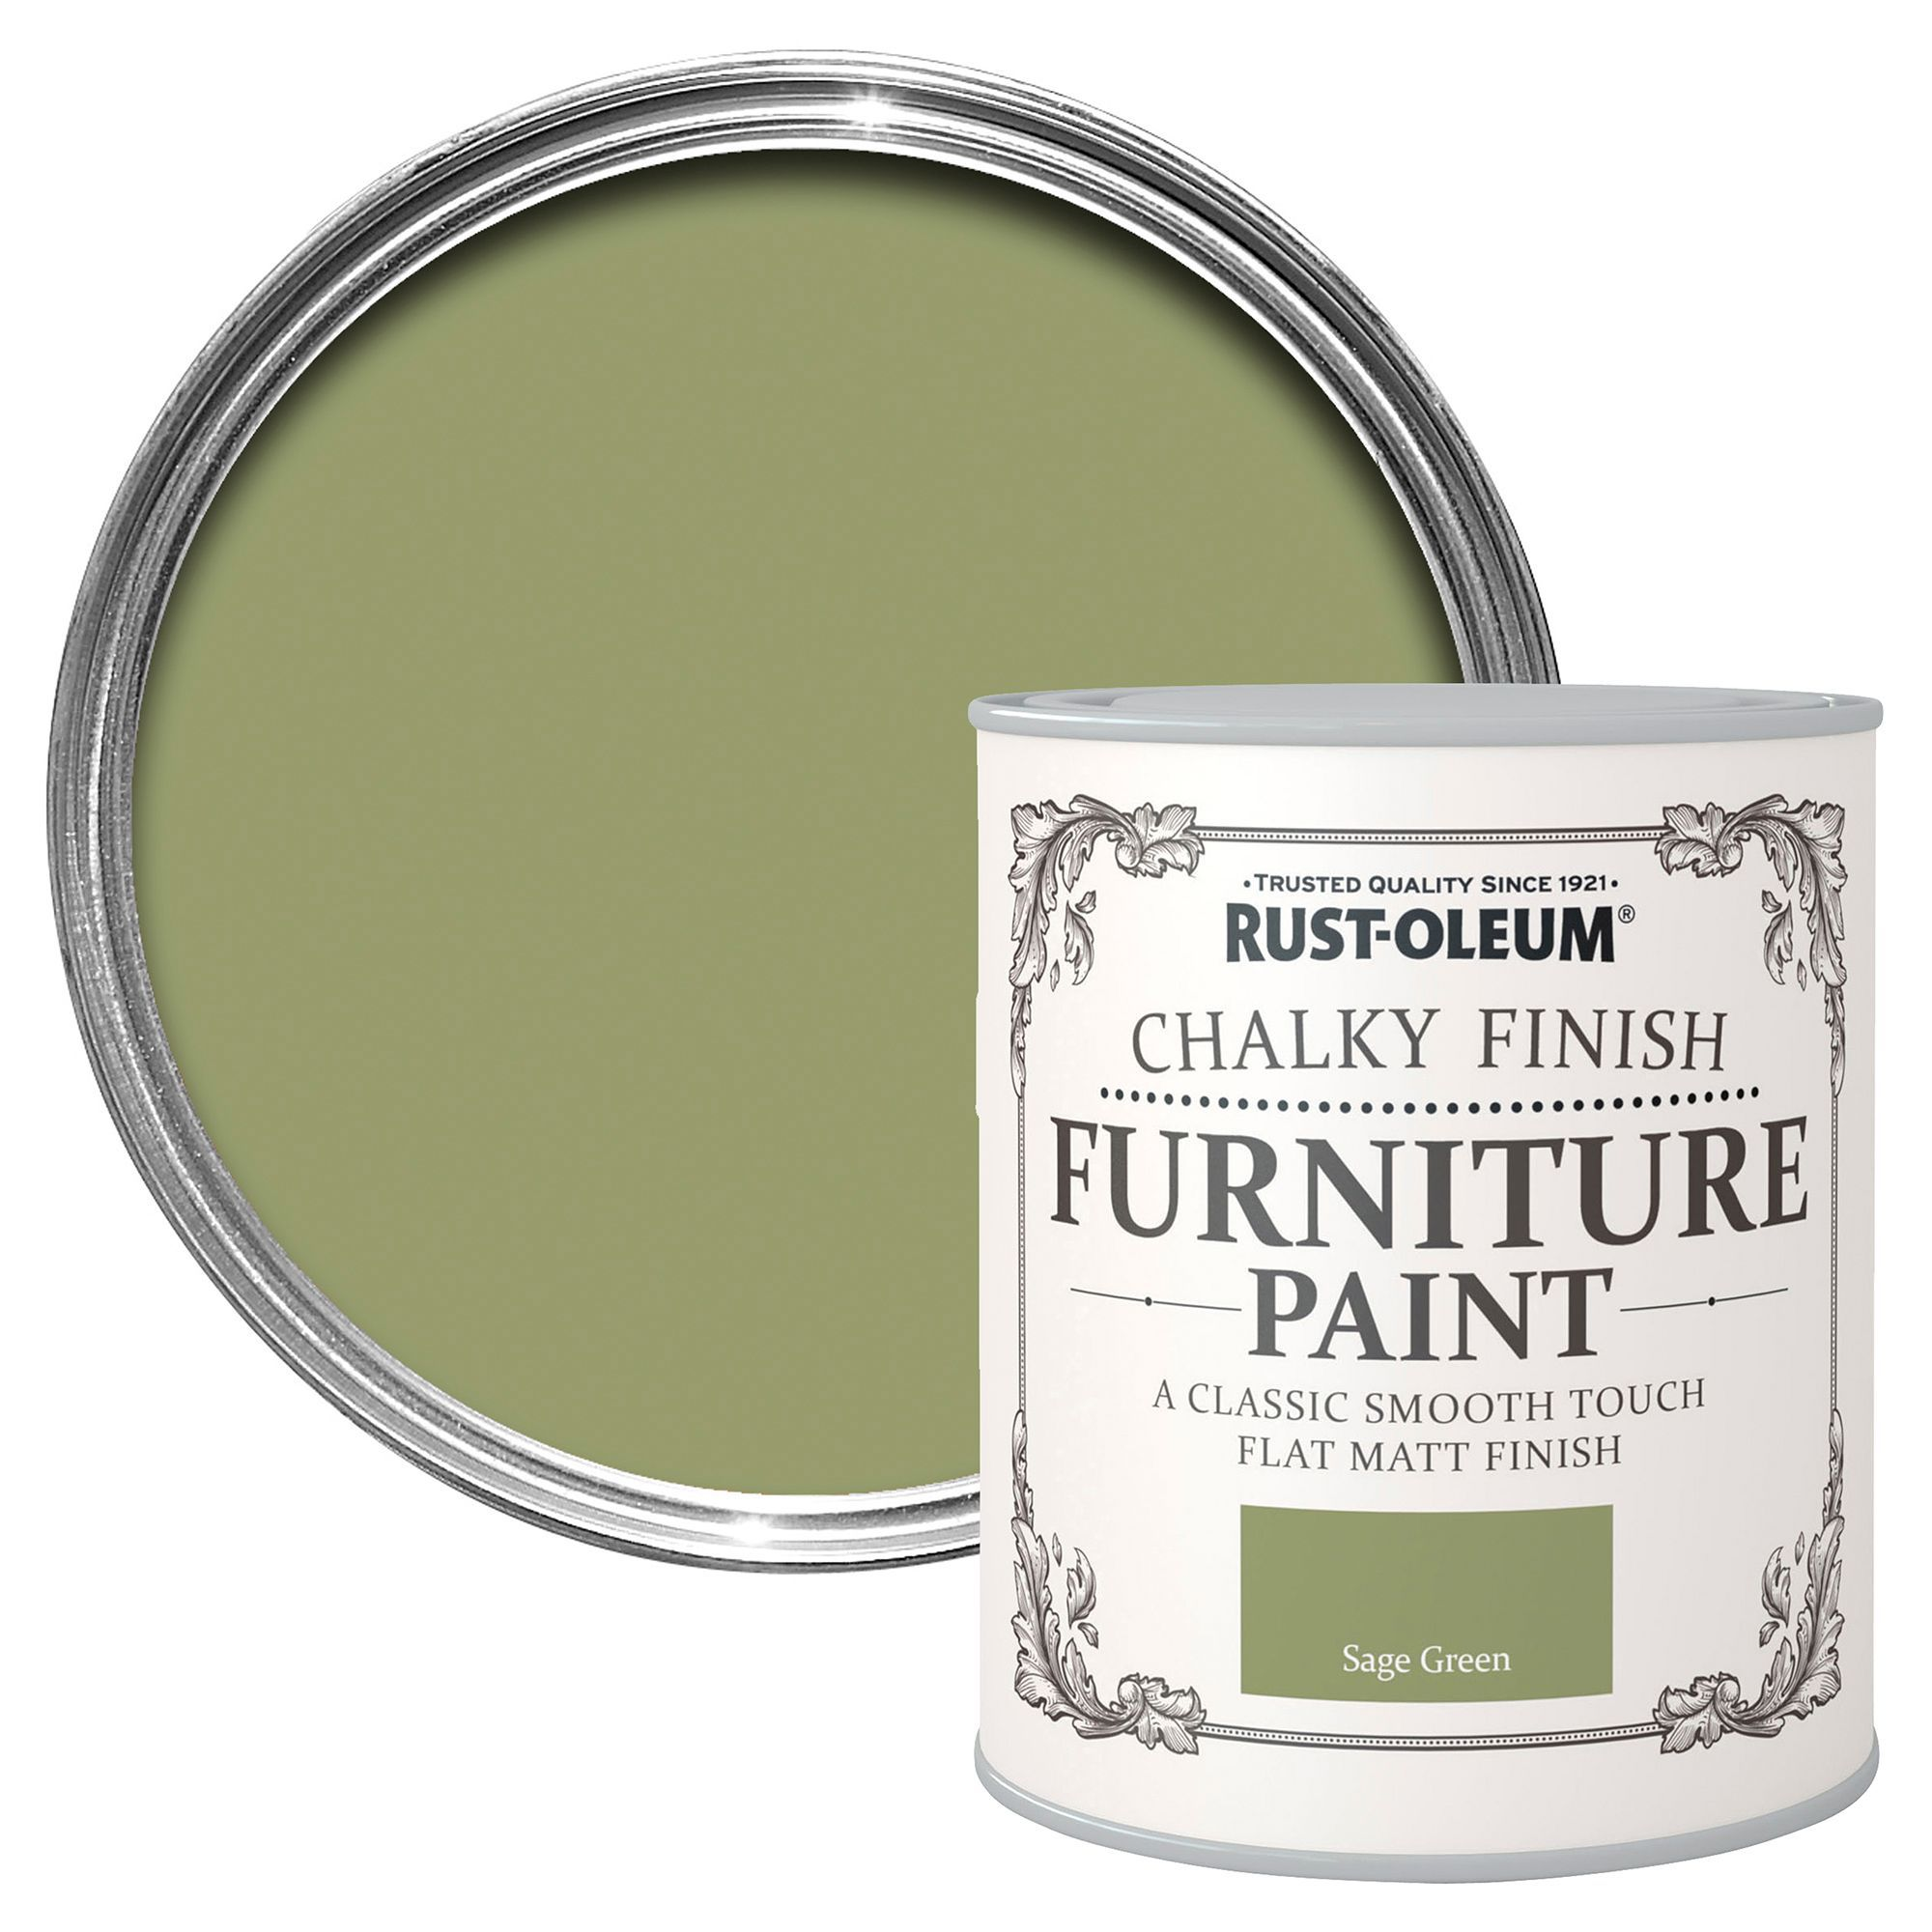 Rust-oleum Rust-oleum Sage Green Matt Furniture Paint 125 Ml